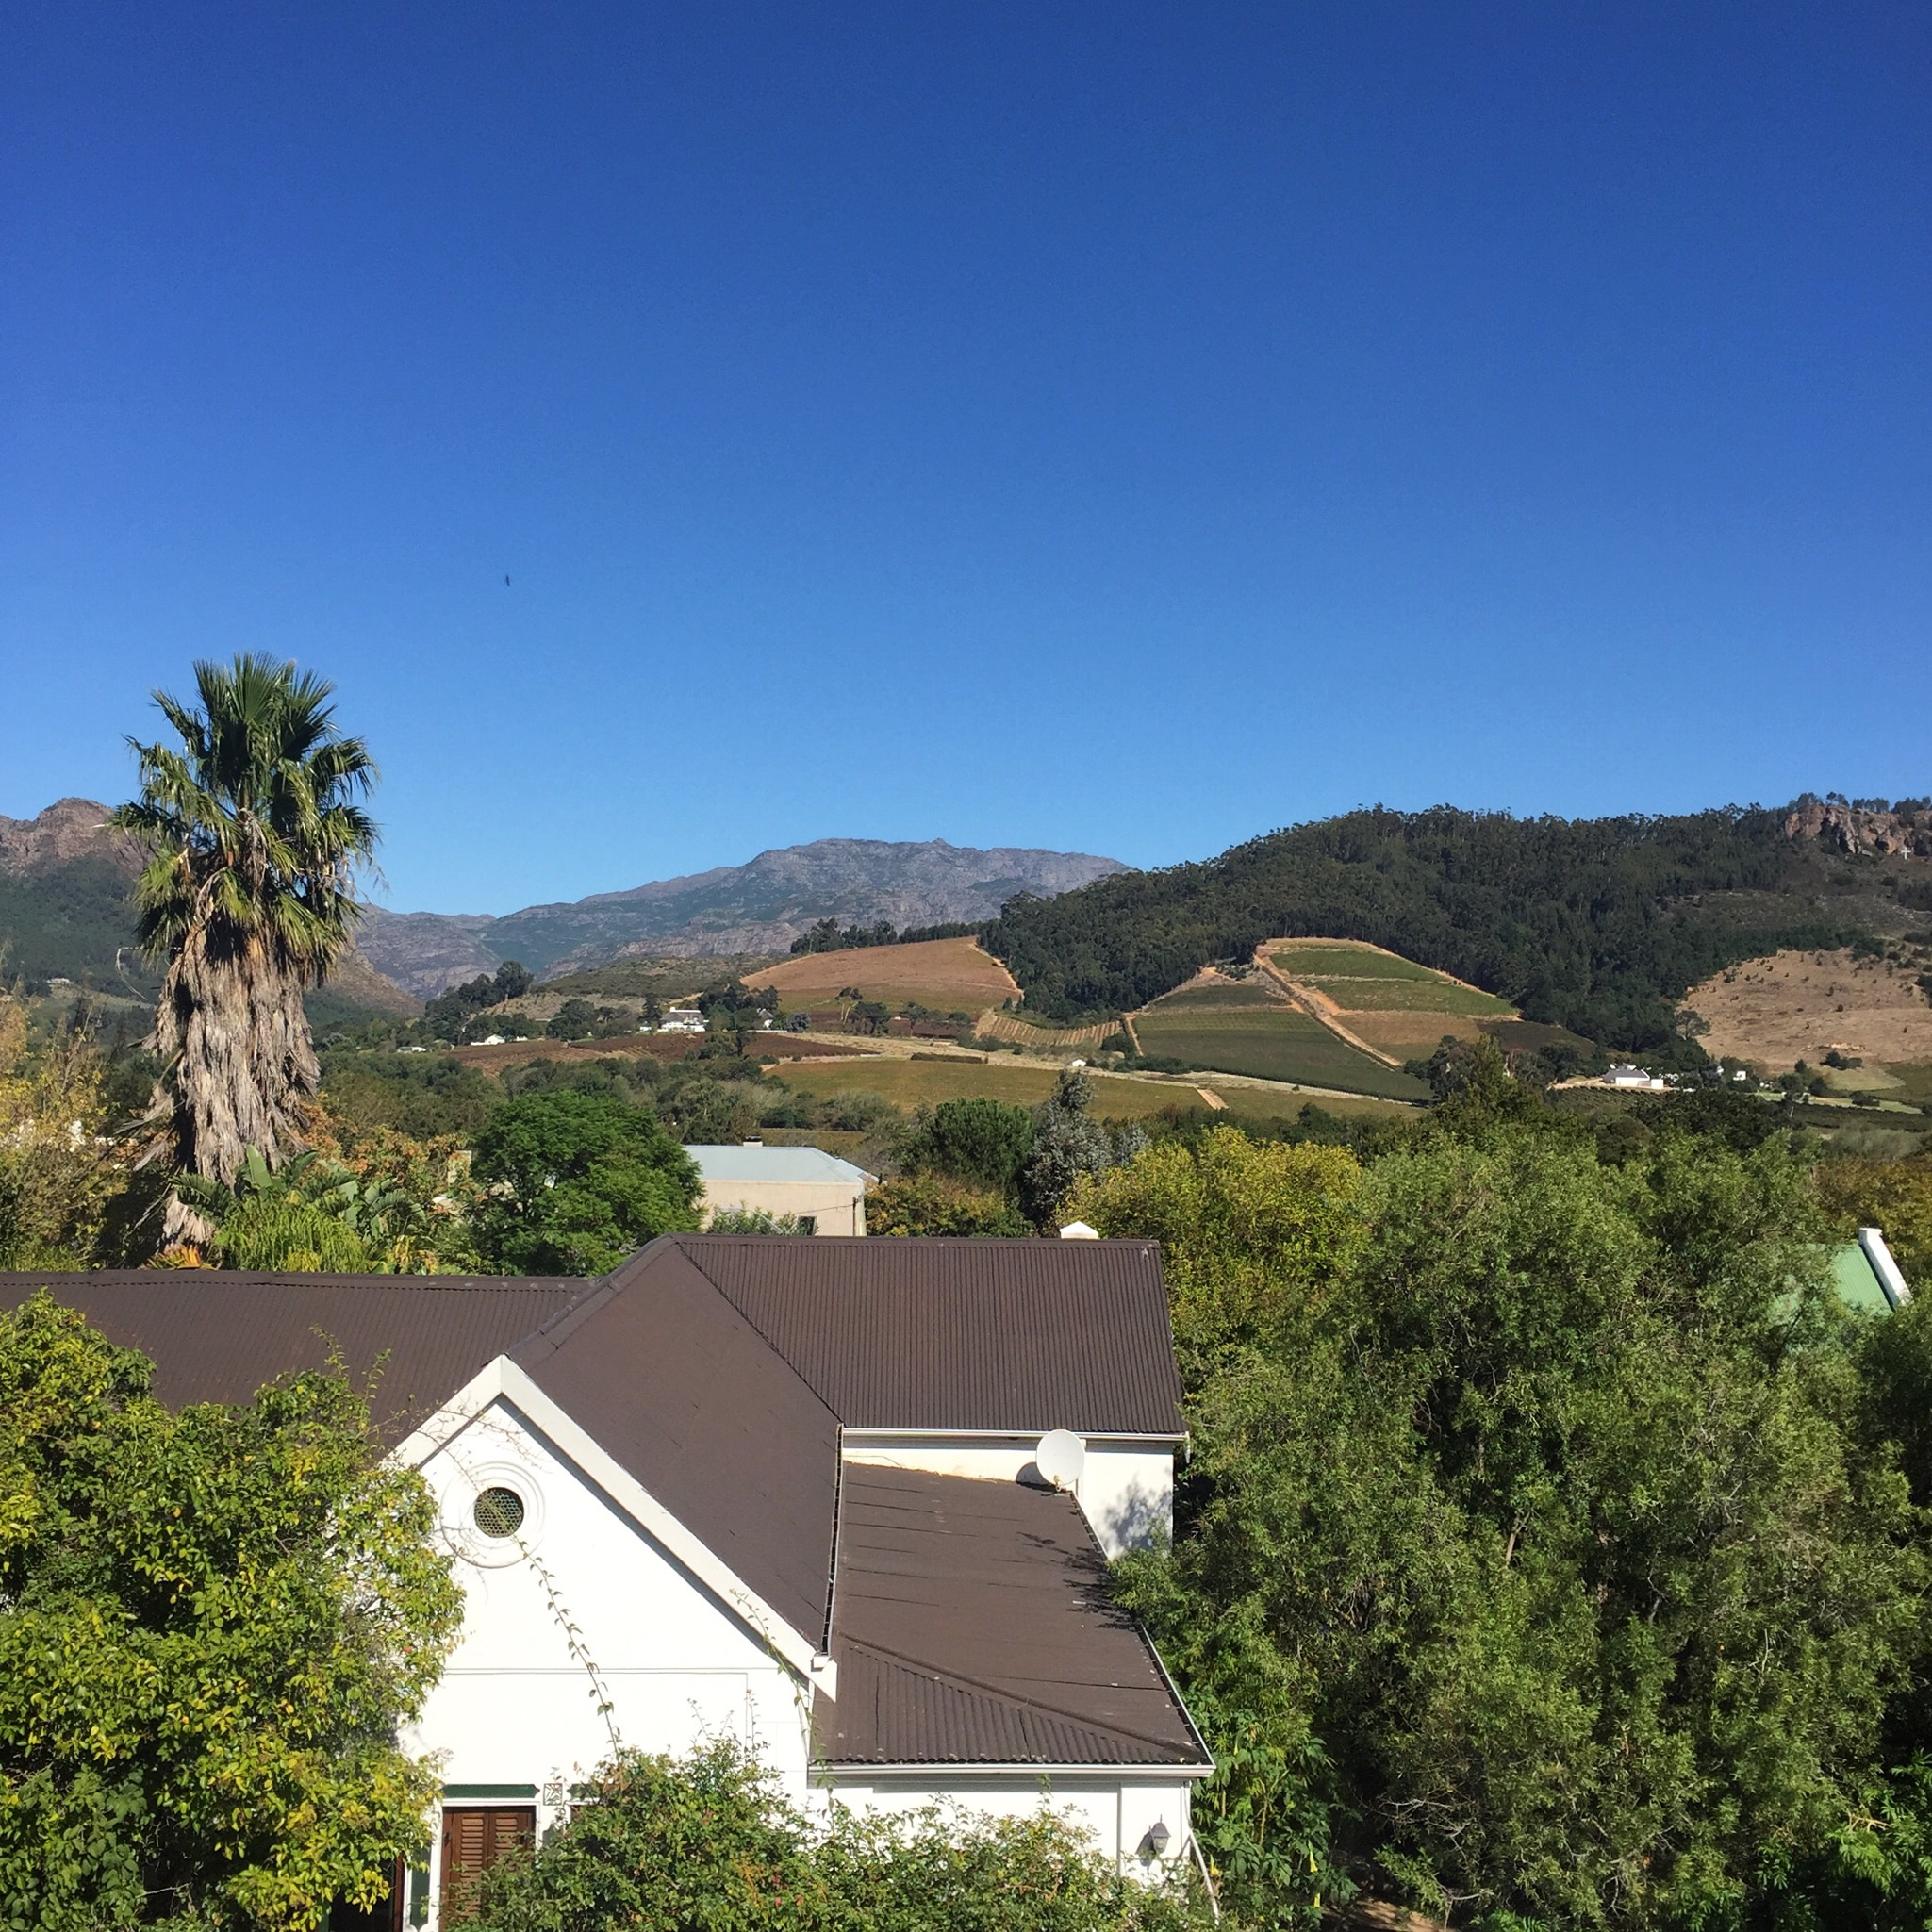 Justdial Hotels: The Franschhoek Boutique Hotel: Why You Must Stay Here